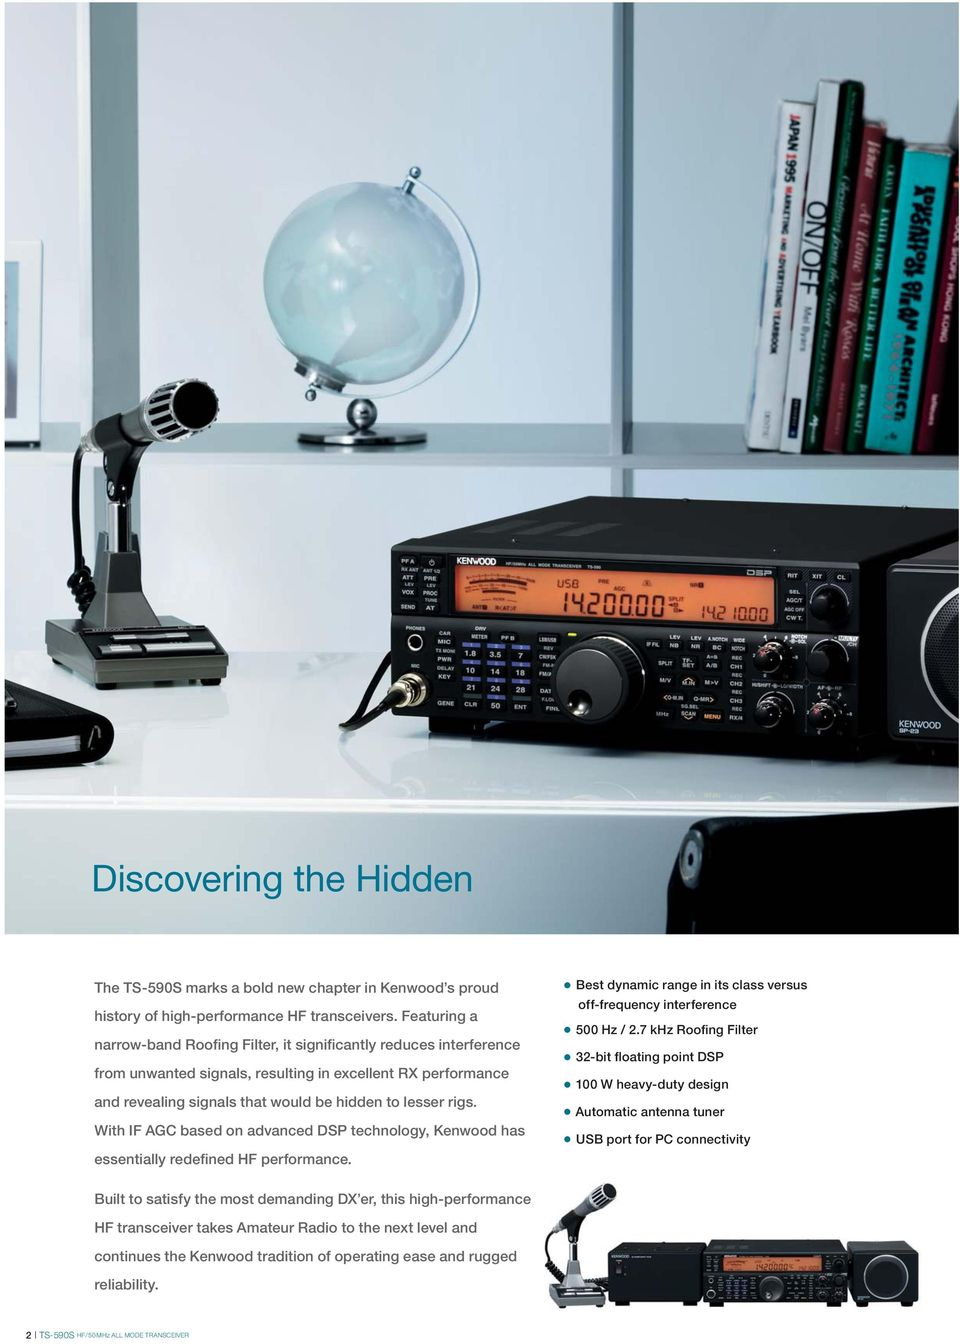 With IF based on advanced DSP technology, Kenwood has essentially redefined HF performance. Best dynamic range in its class versus off-frequency interference 500 Hz / 2.